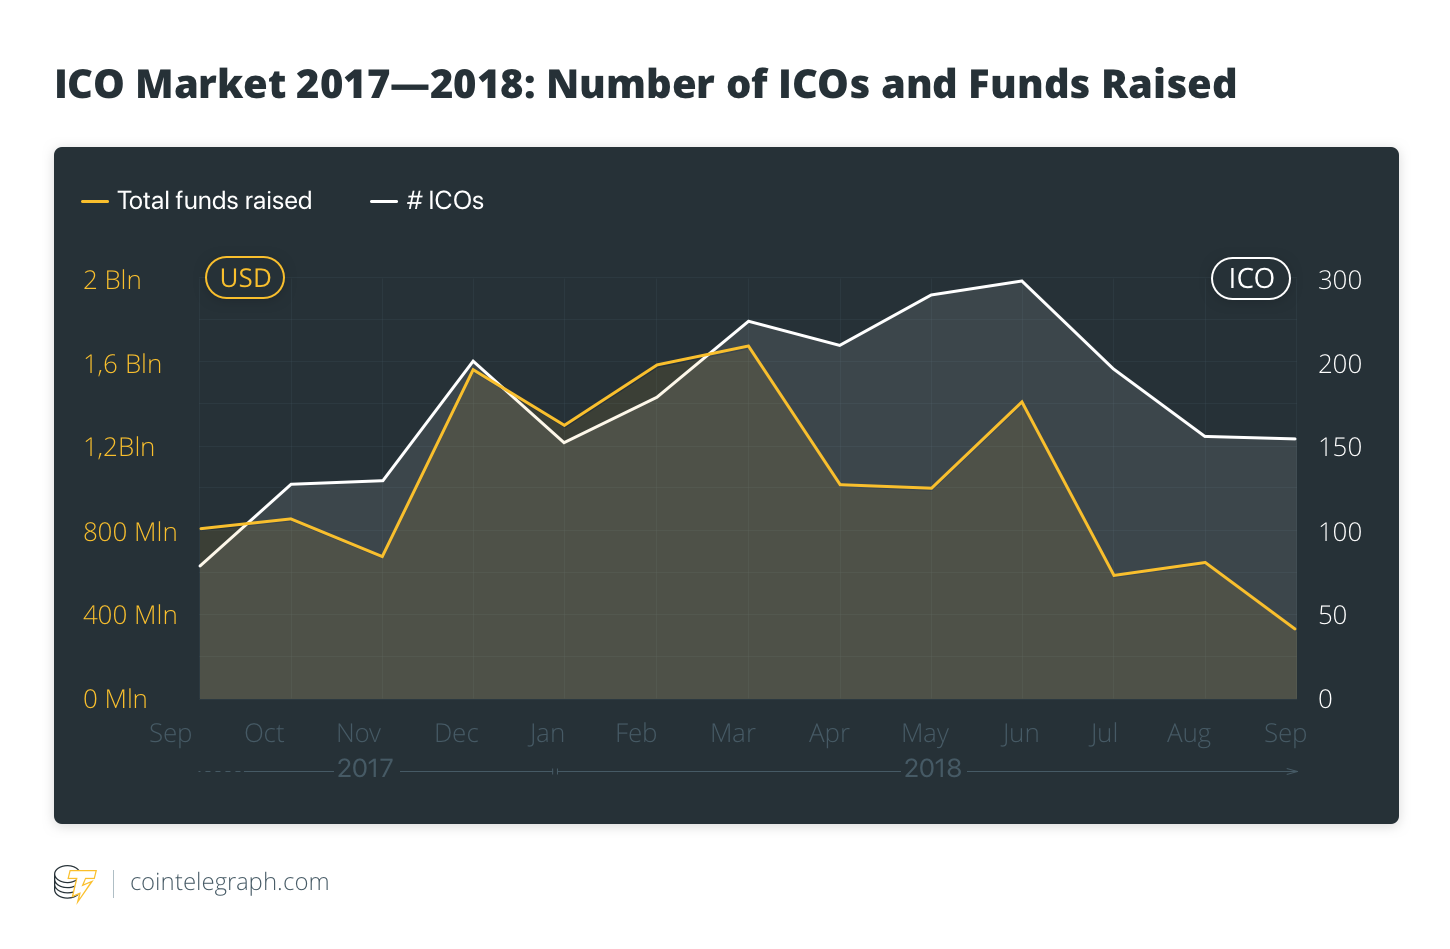 ICO Market 2017–2018: Number of ICOs and Funds Raised